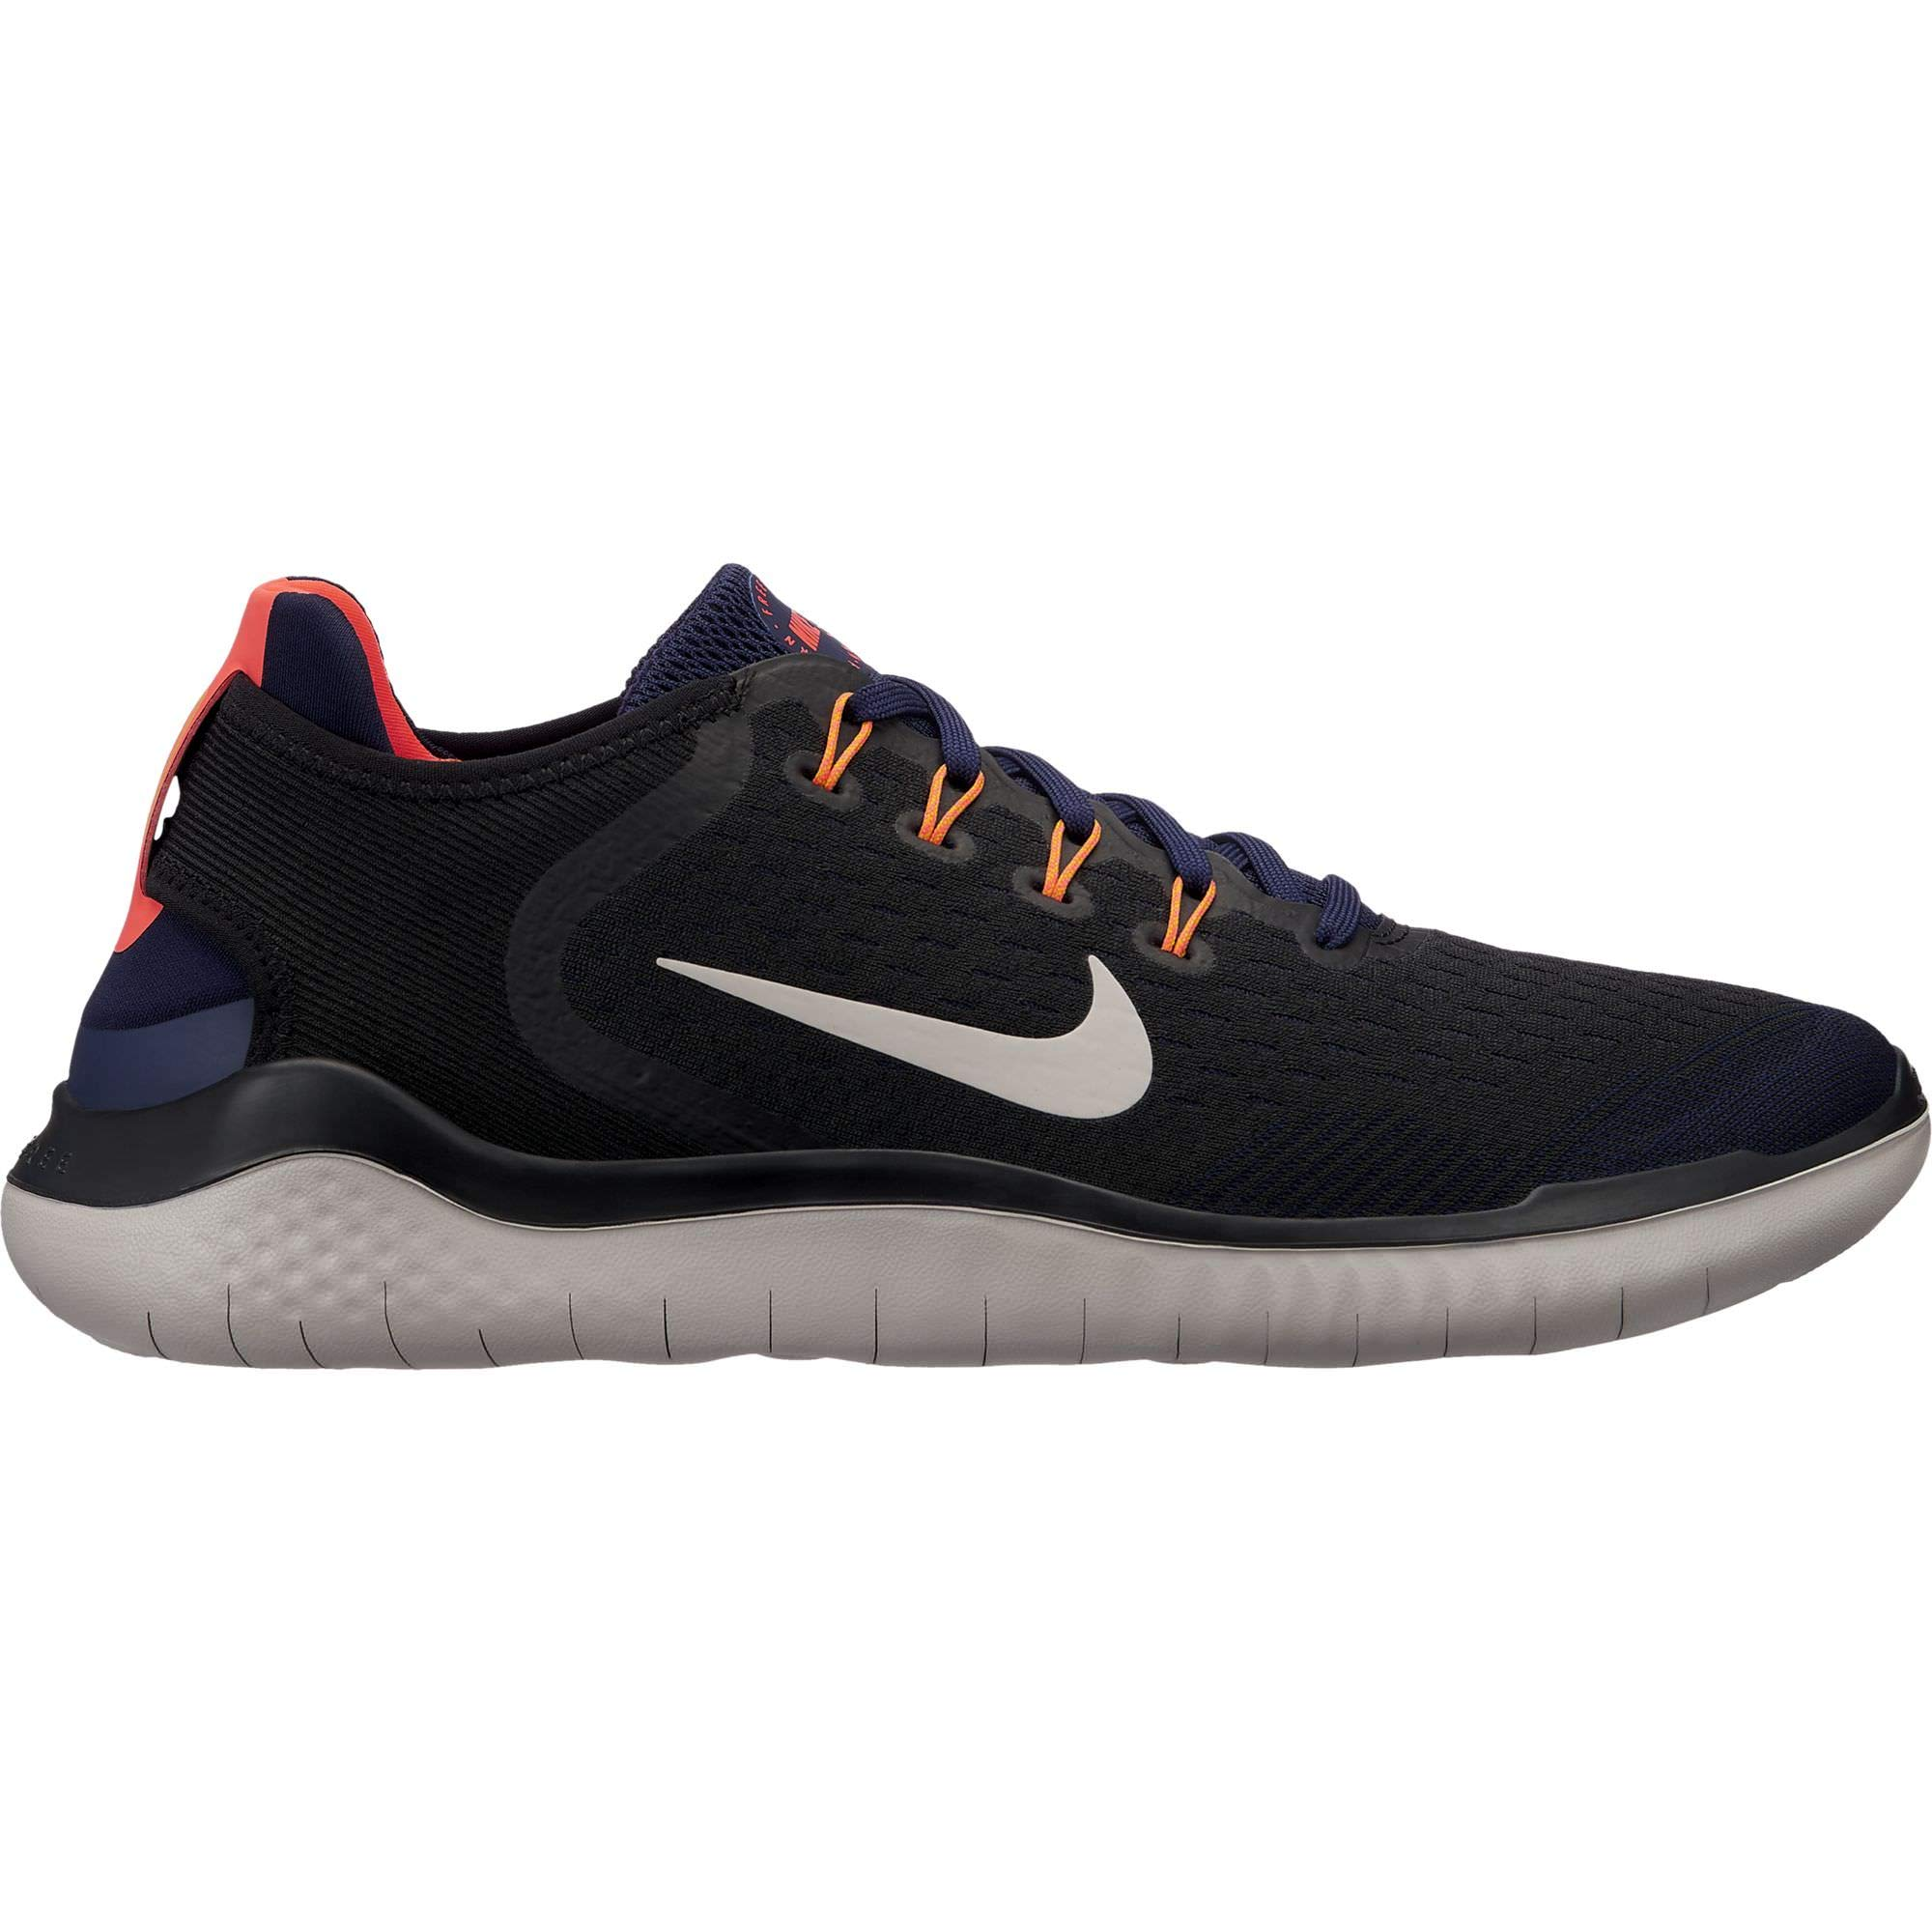 88d707fca02a3 Nike Men's Free RN 2018 Black/Moon Particle/Blackened Blue Size 11.5 M US